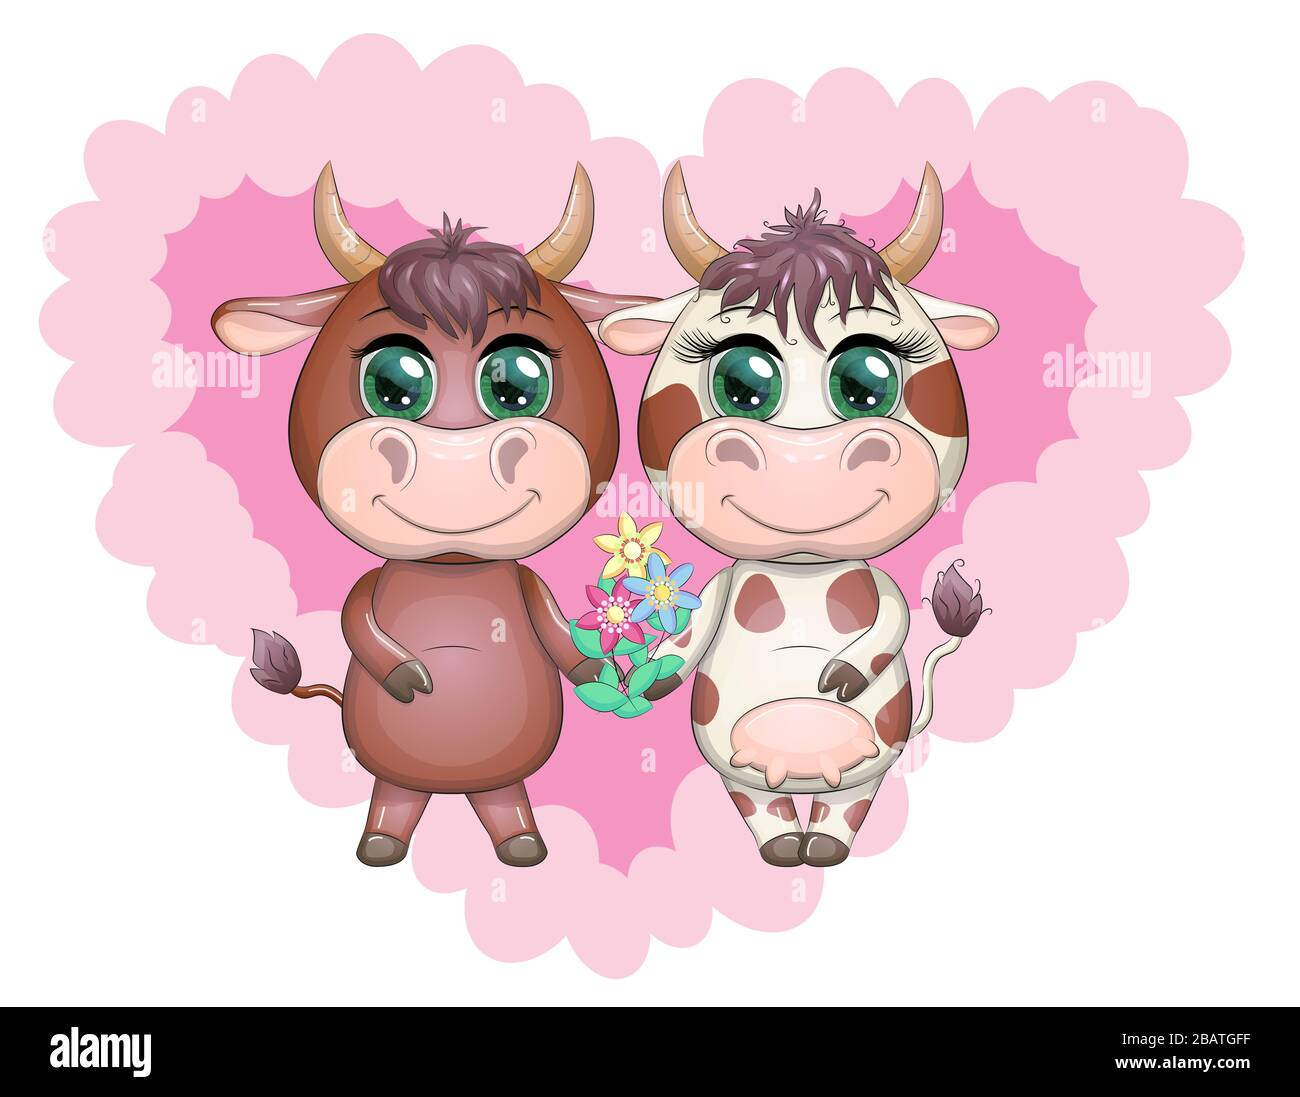 Cartoon Couple High Resolution Stock Photography And Images Alamy